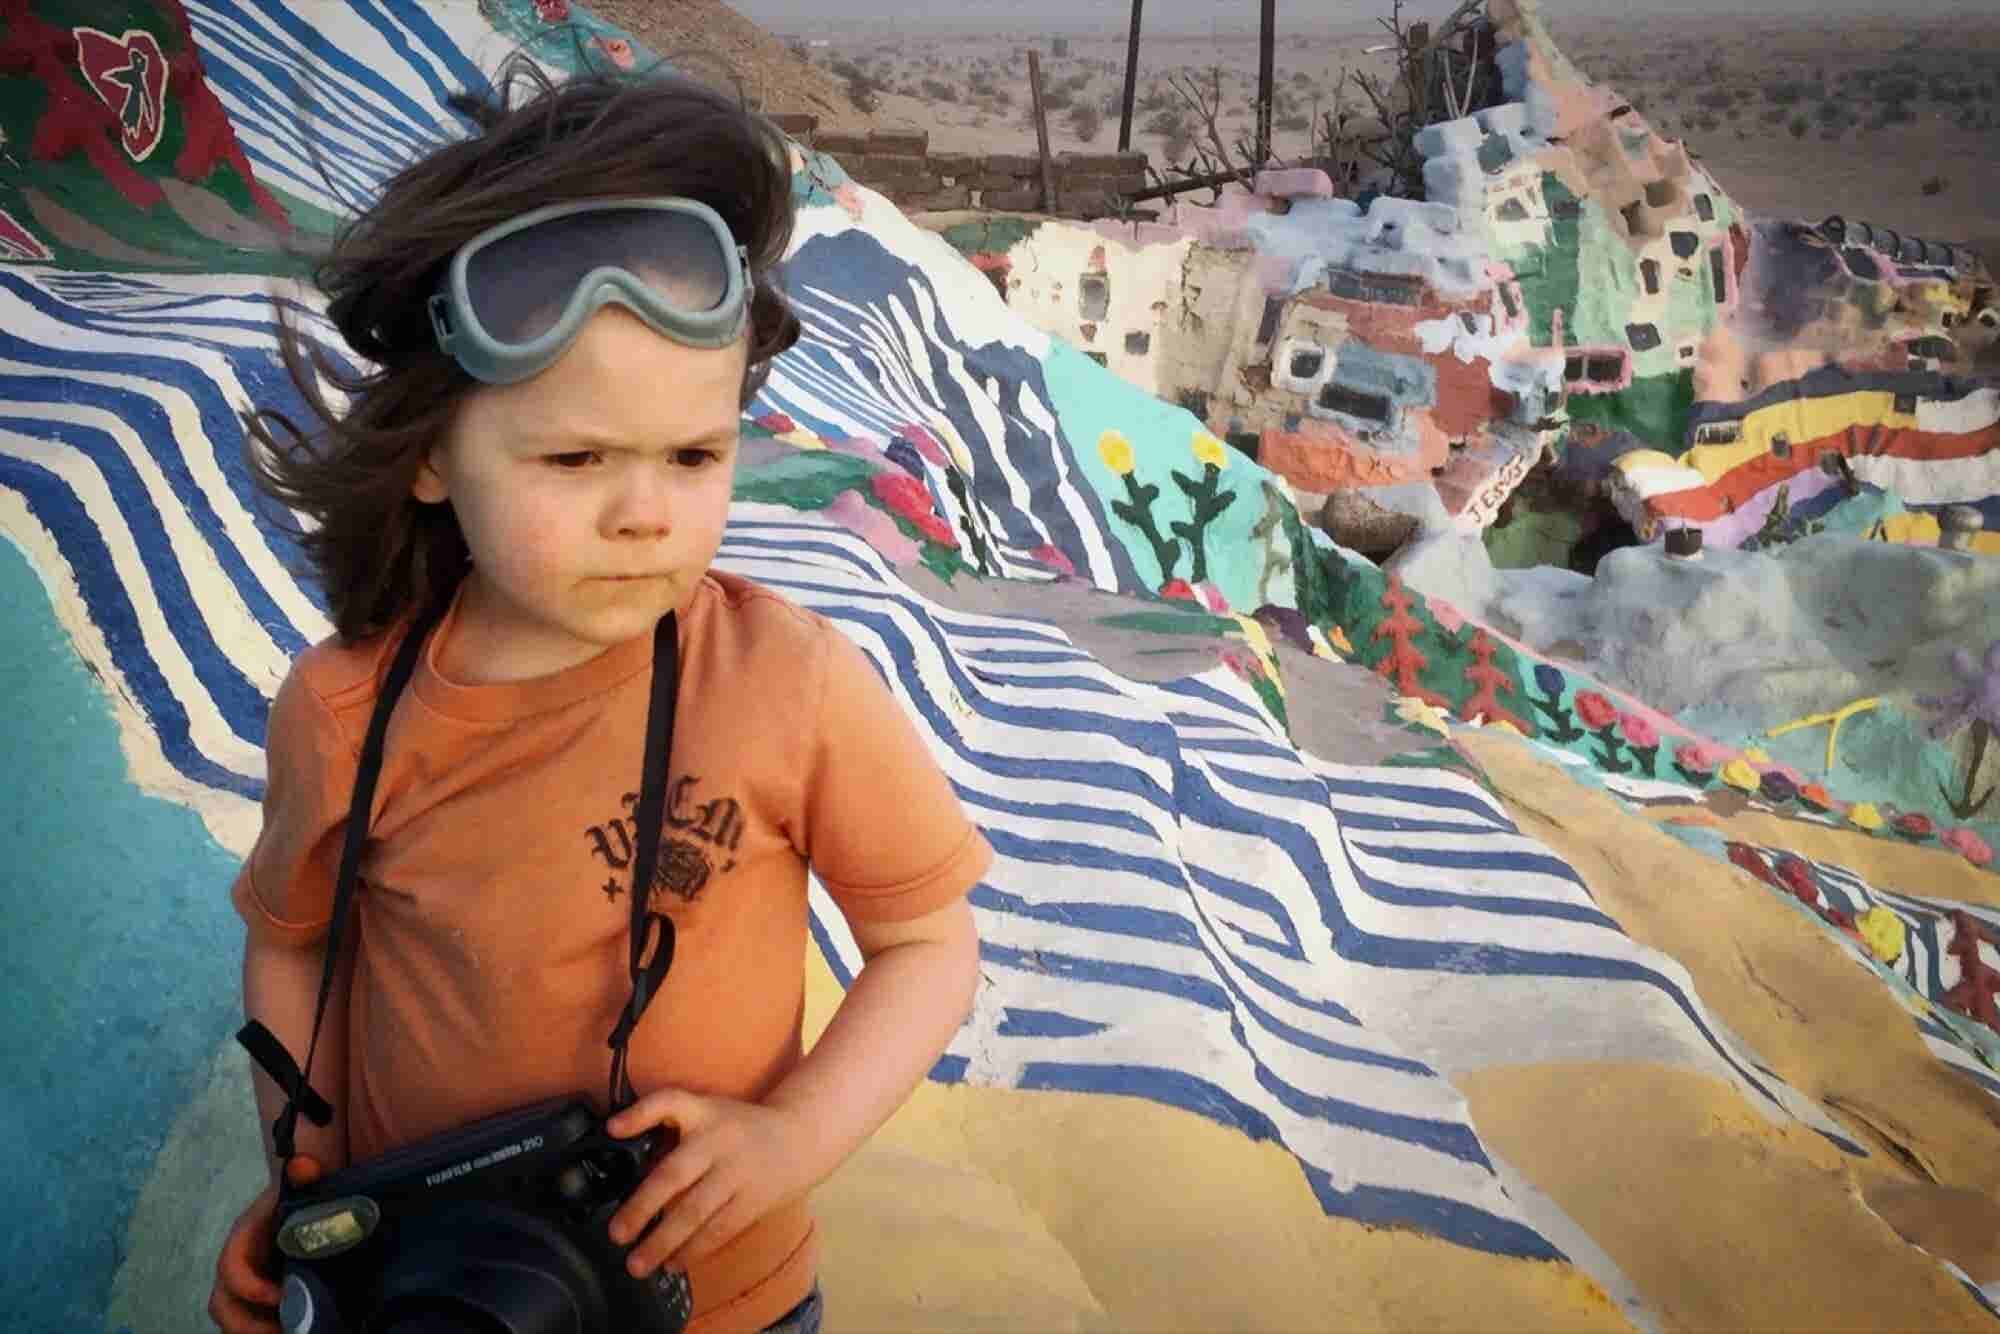 This 5-Year-Old Photographer With 160,000 Instagram Followers Just Kickstarted His Own Book